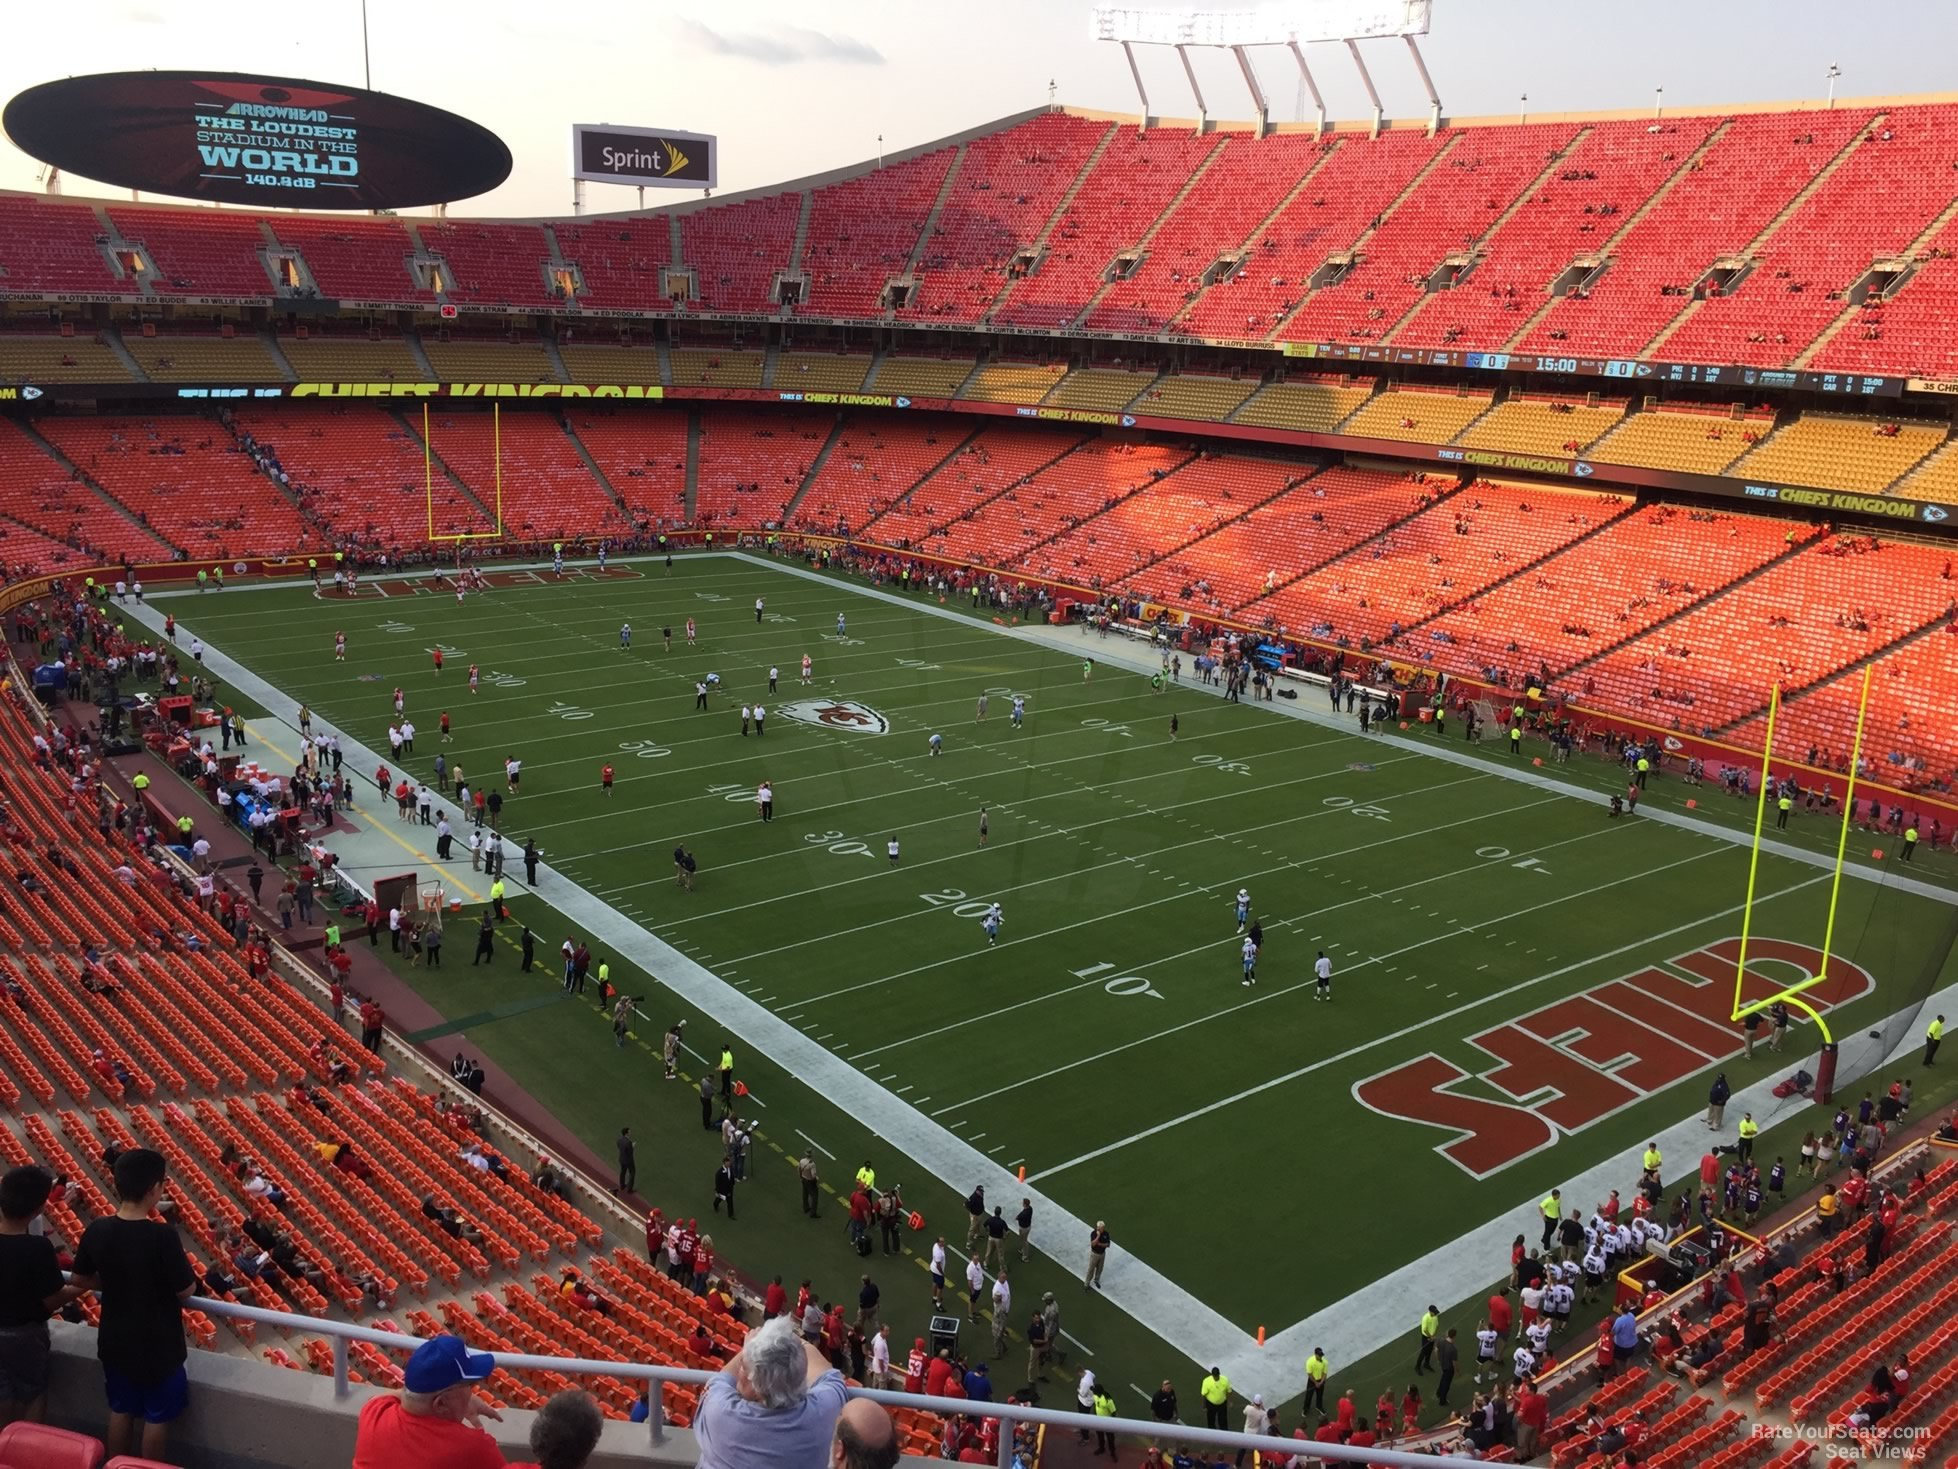 Seat View for Arrowhead Stadium Section 317, Row 7